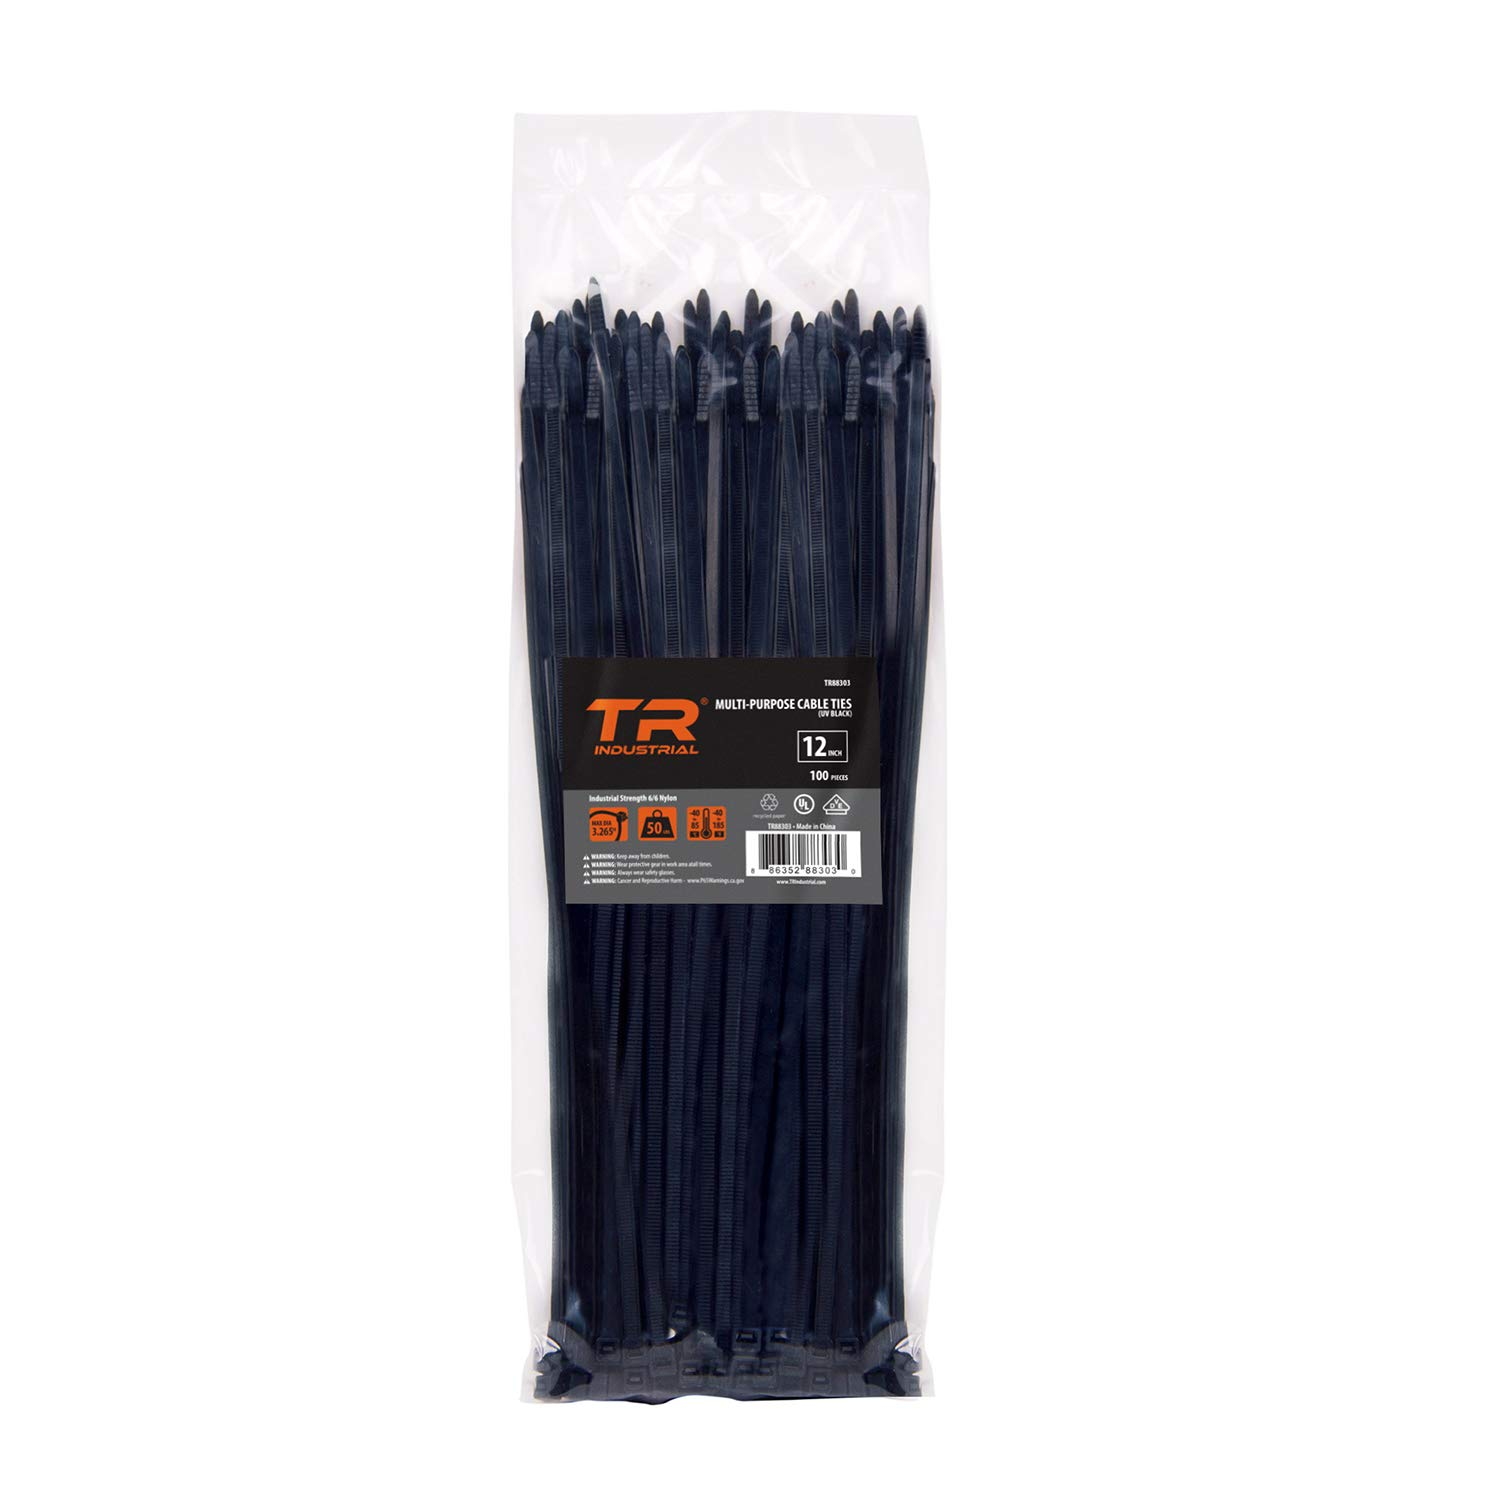 TR Industrial TR88306 Multi-Purpose Cable Ties (50 Piece), 24', Black 24 Capri Tools